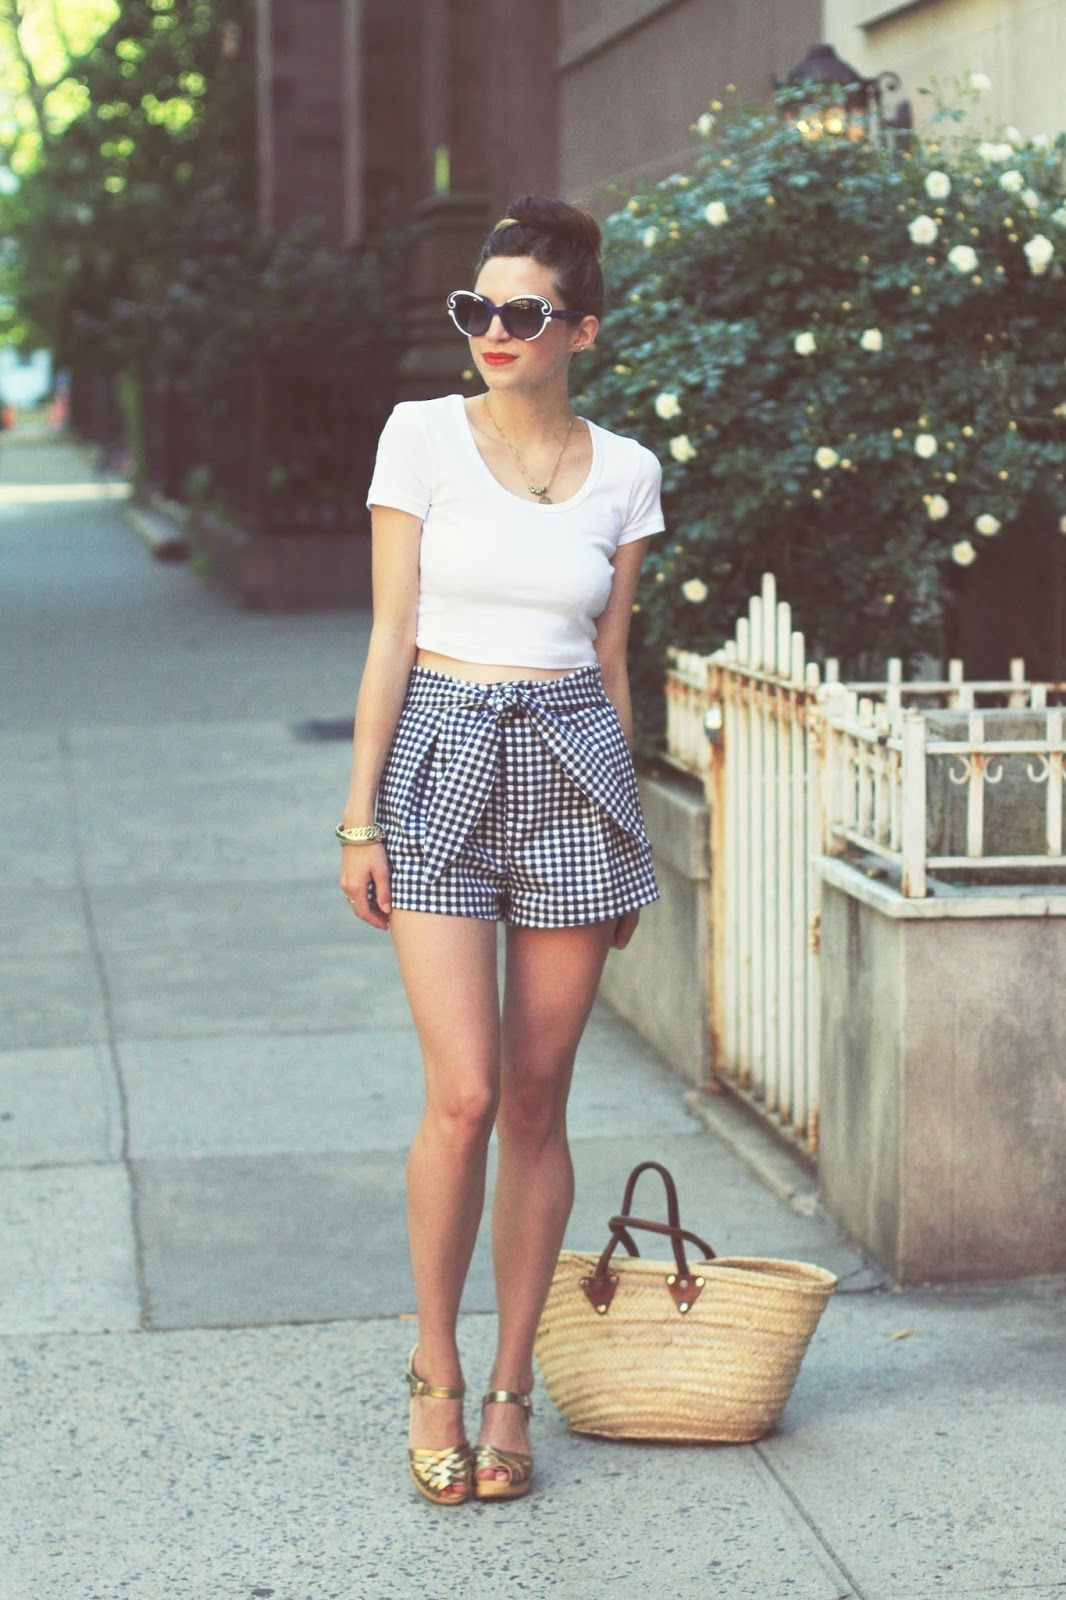 Buy Picnic stylish outfits pictures trends